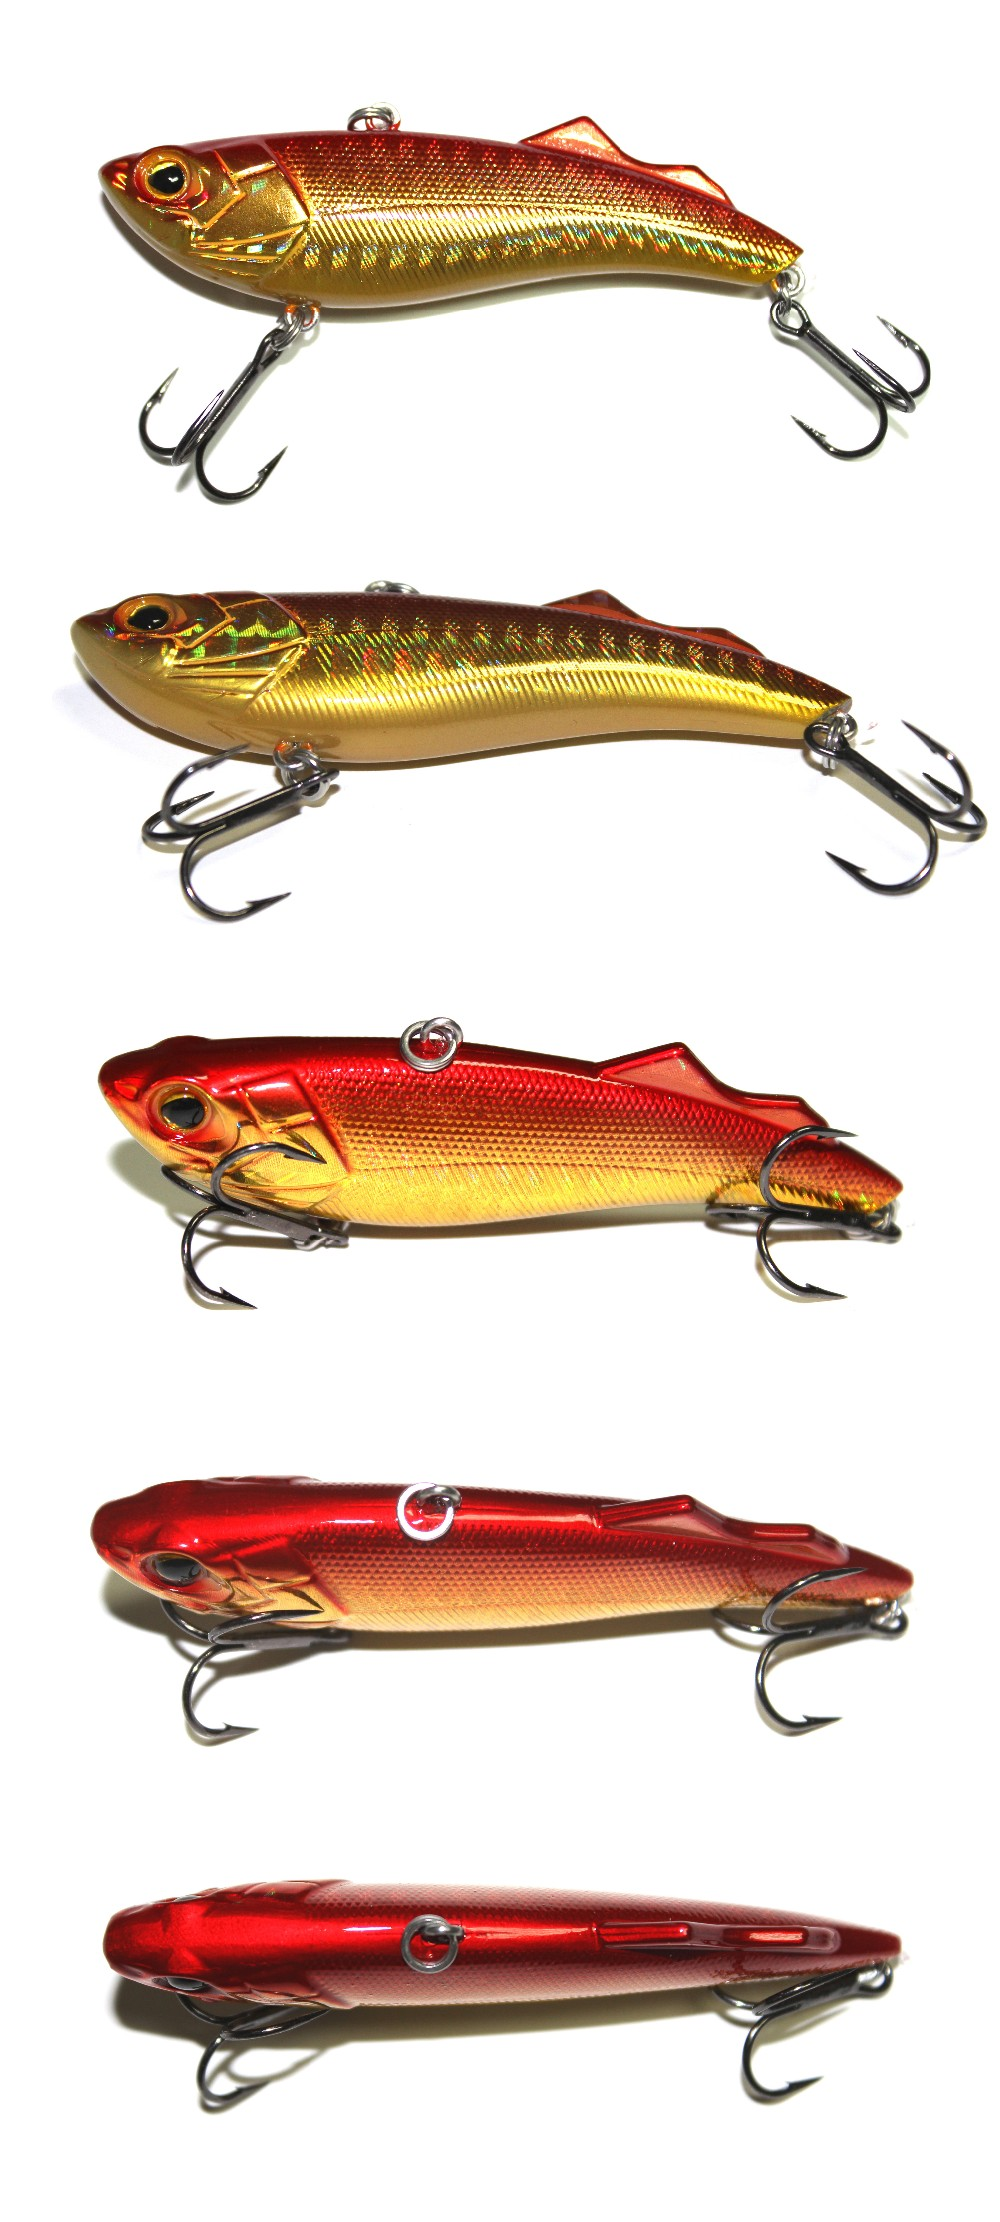 Wholesale fishing bait and tackle saltwater fishing lure for Wholesale fishing equipment